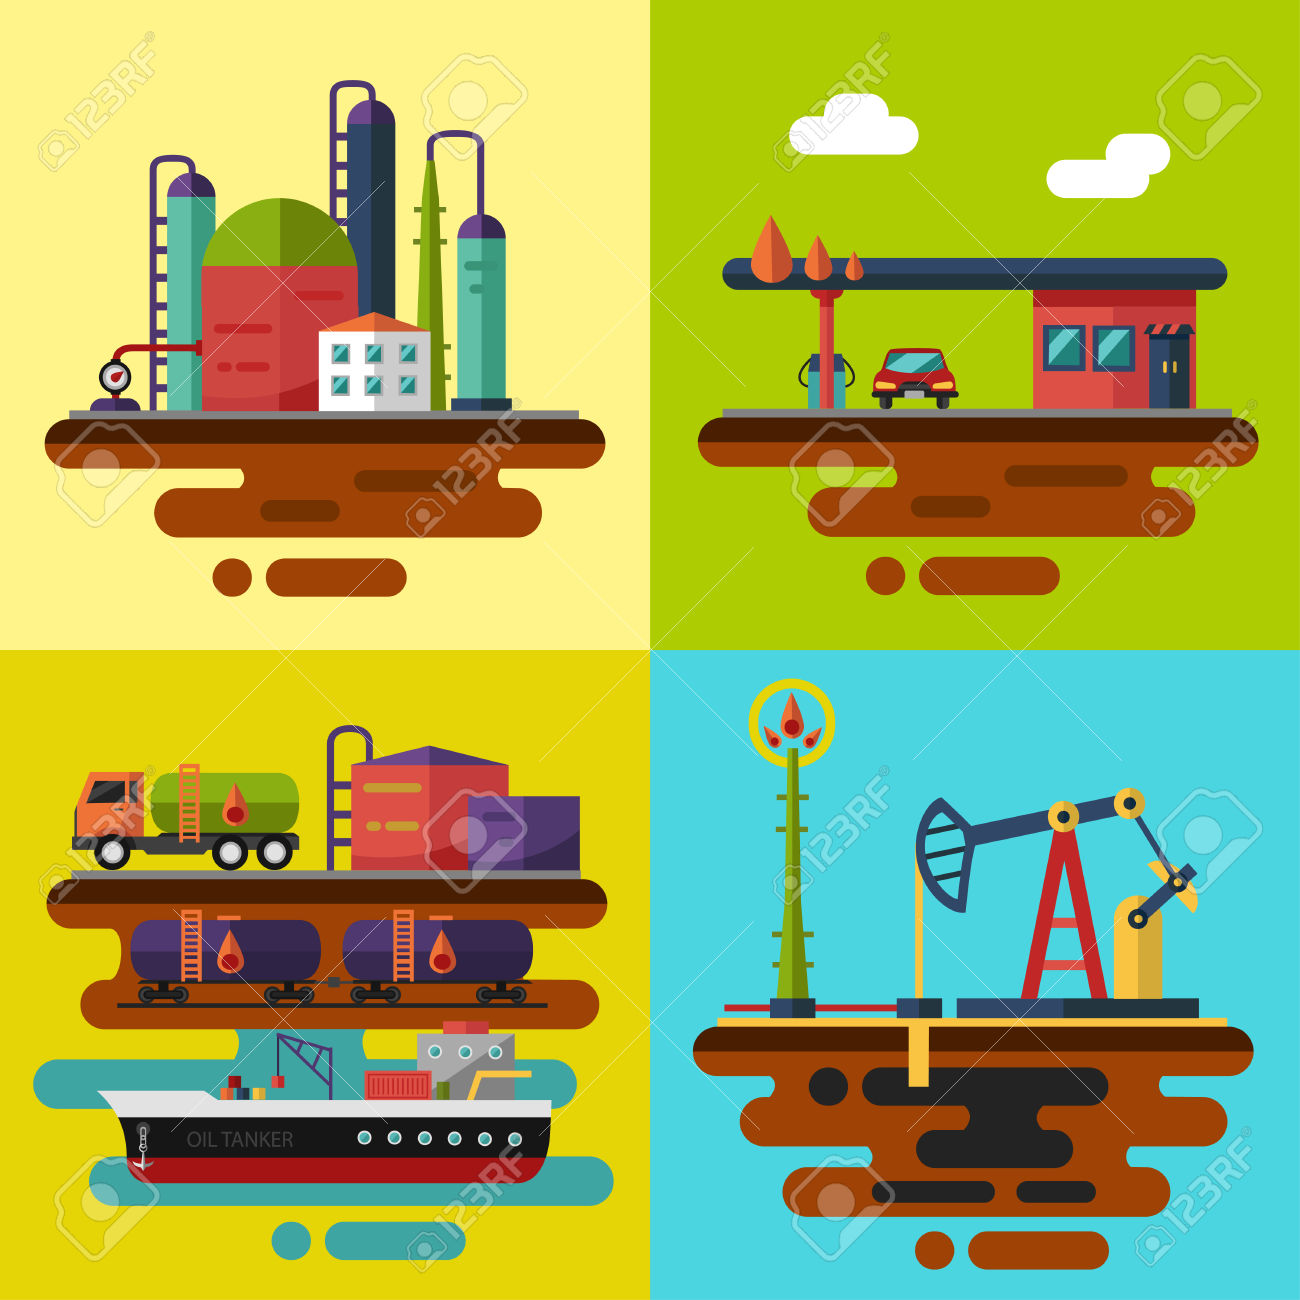 Vector Flat Illustrations. Oil Extraction, Oil Pumping Station.